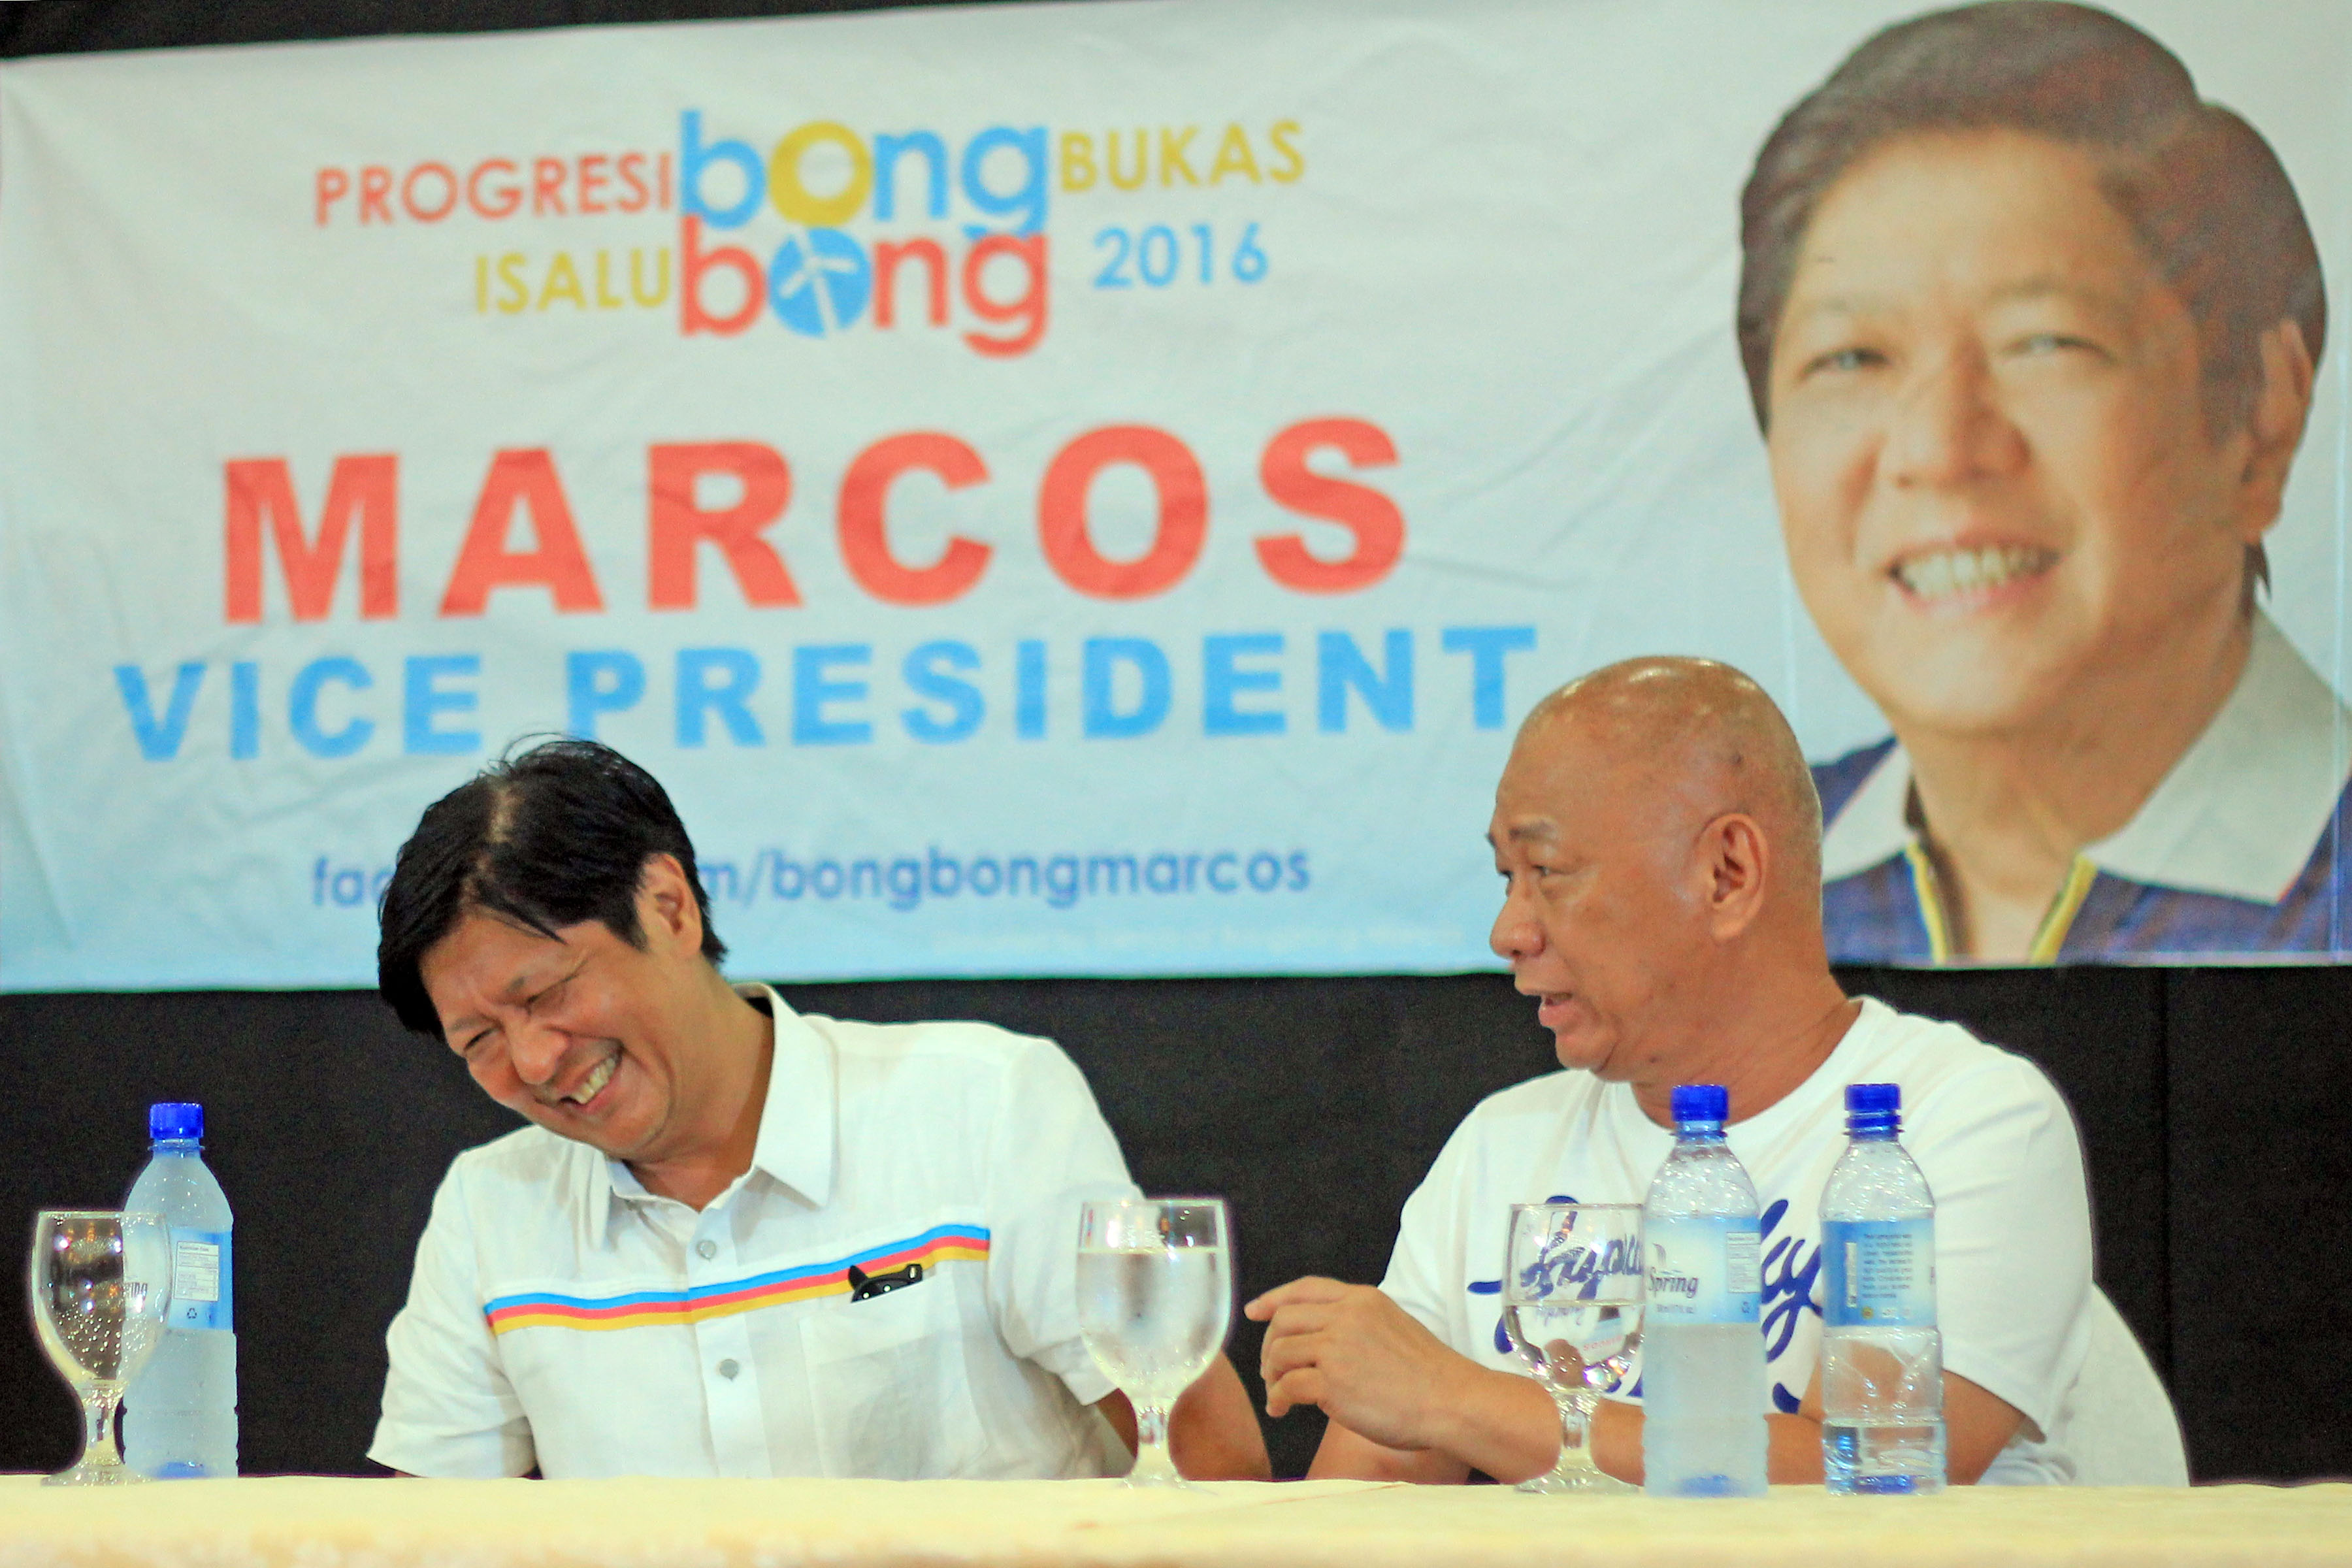 Marcos campaign